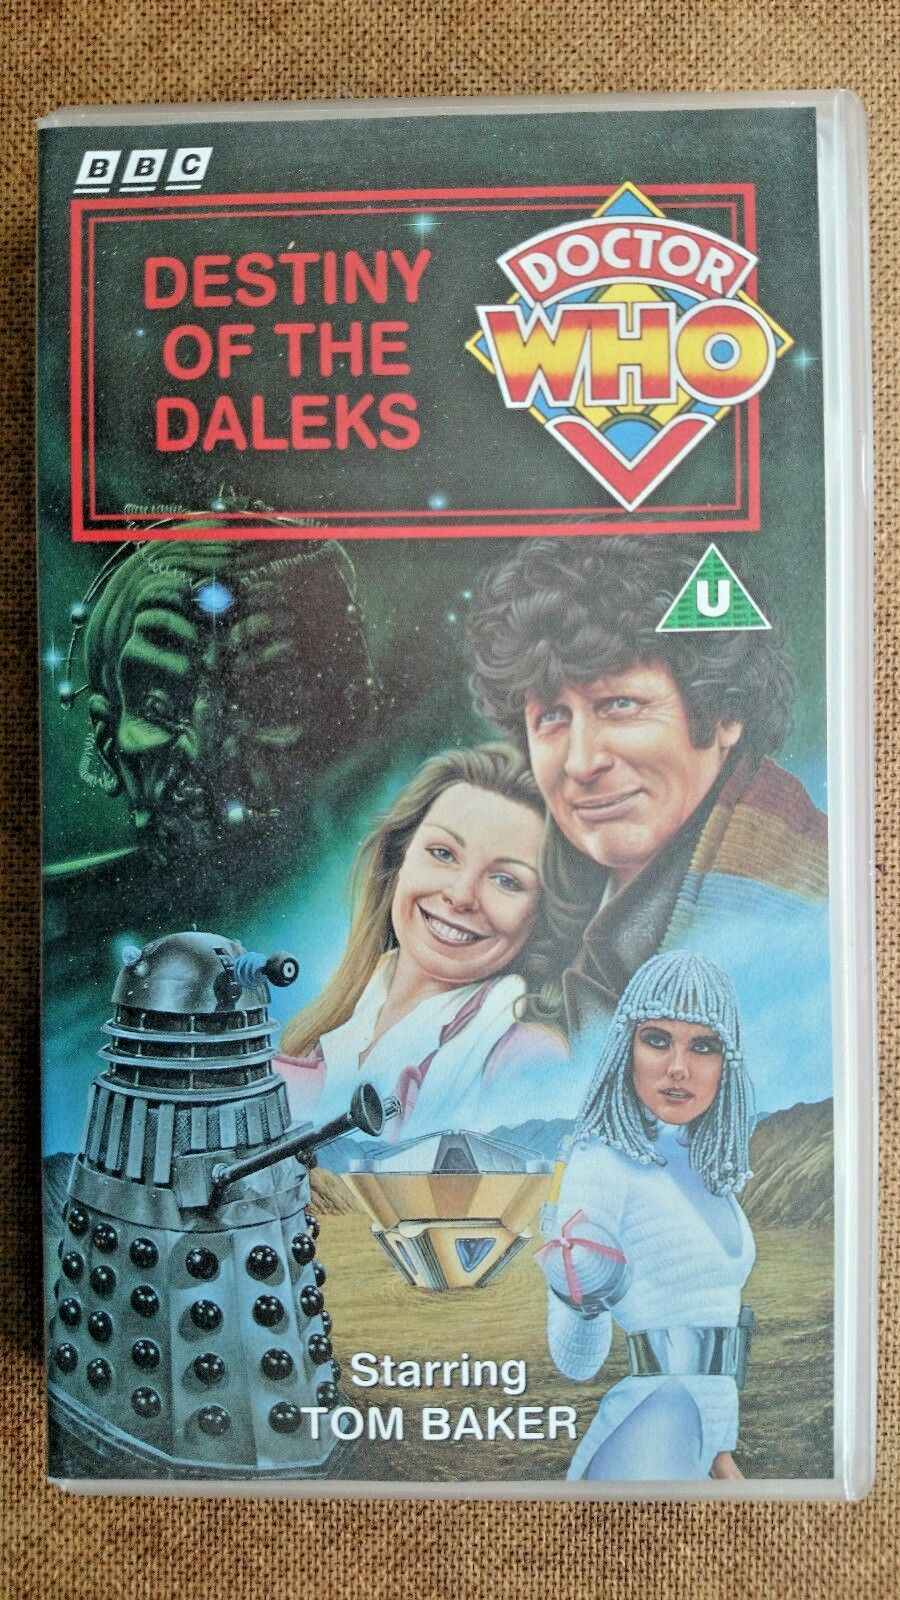 Doctor Who - Destiny Of The Daleks (VHS, 1994) - Tom Baker